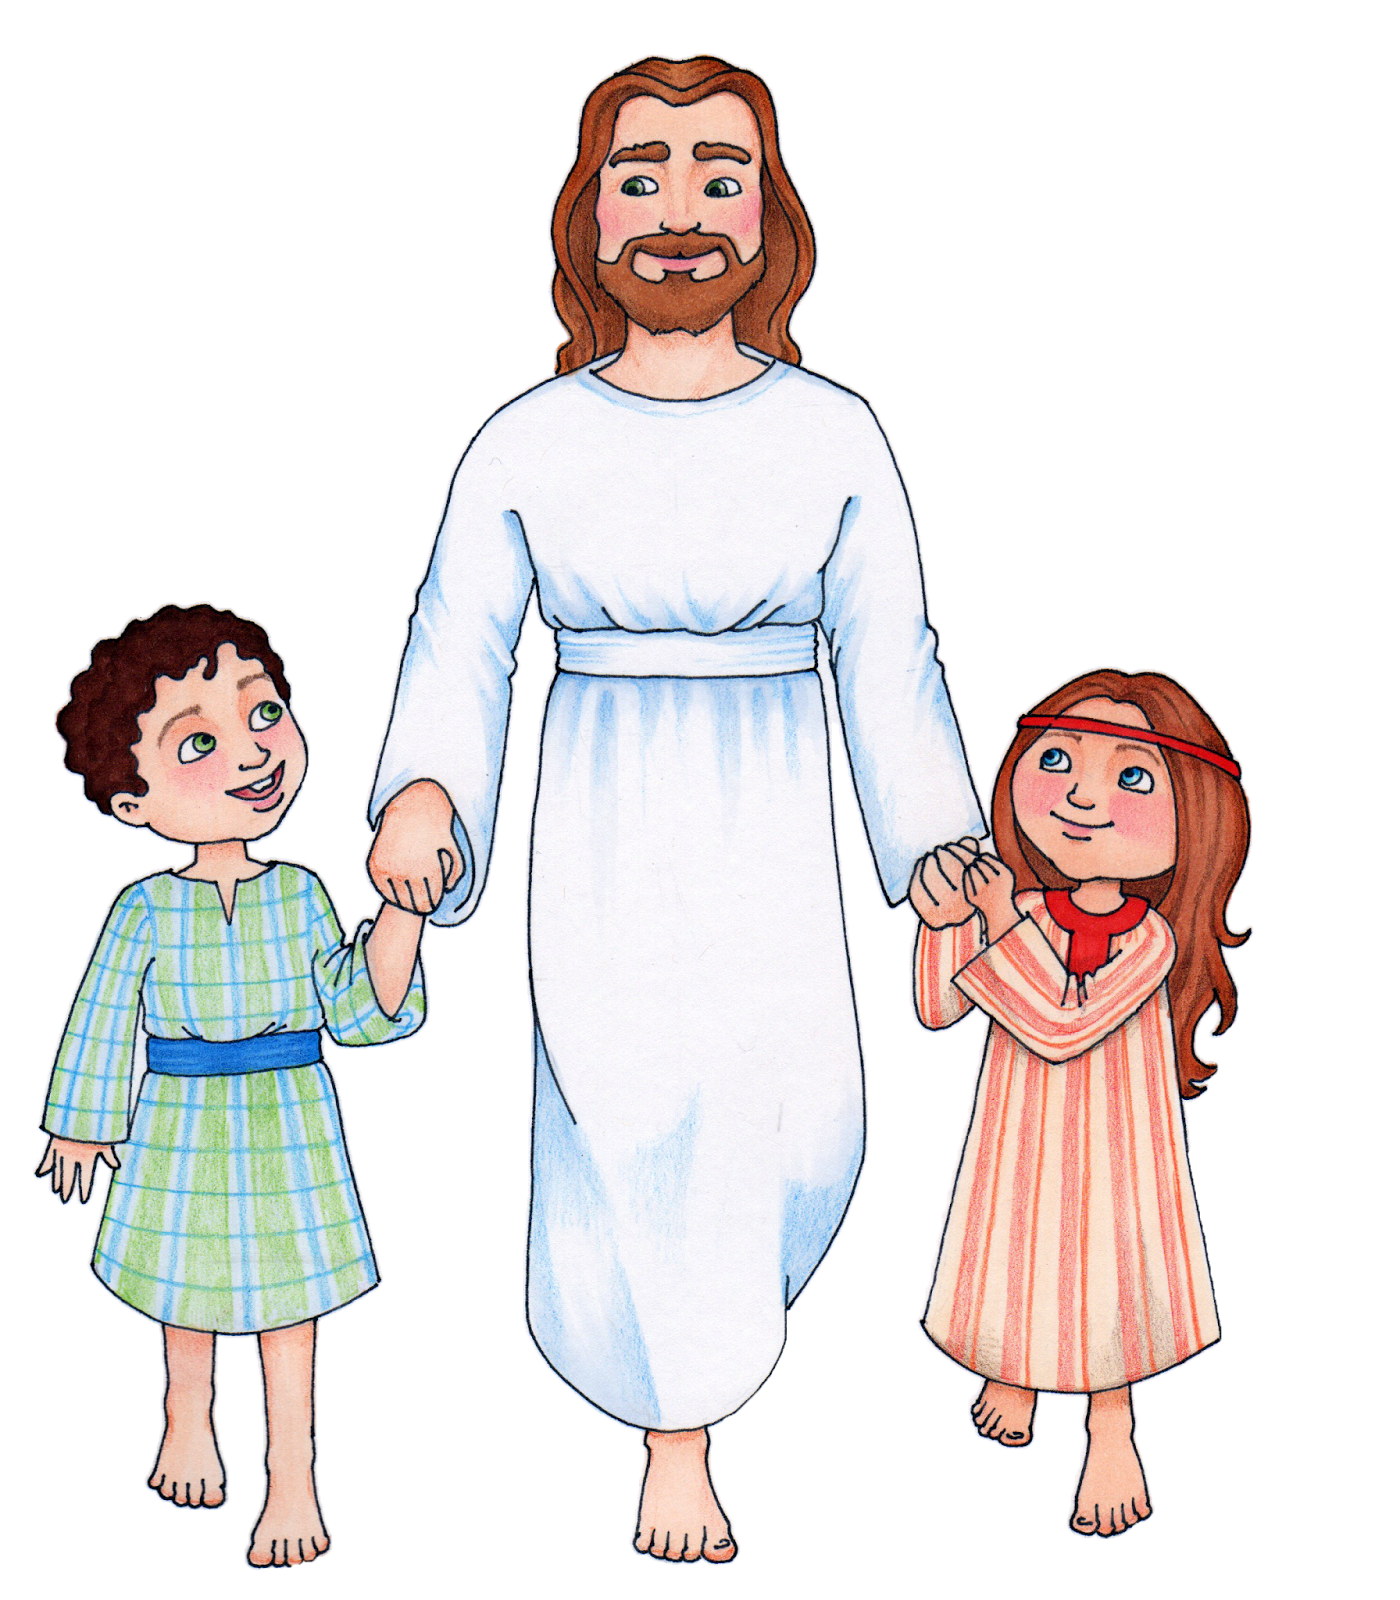 Lds clipart heavenly father. Susan fitch design christ